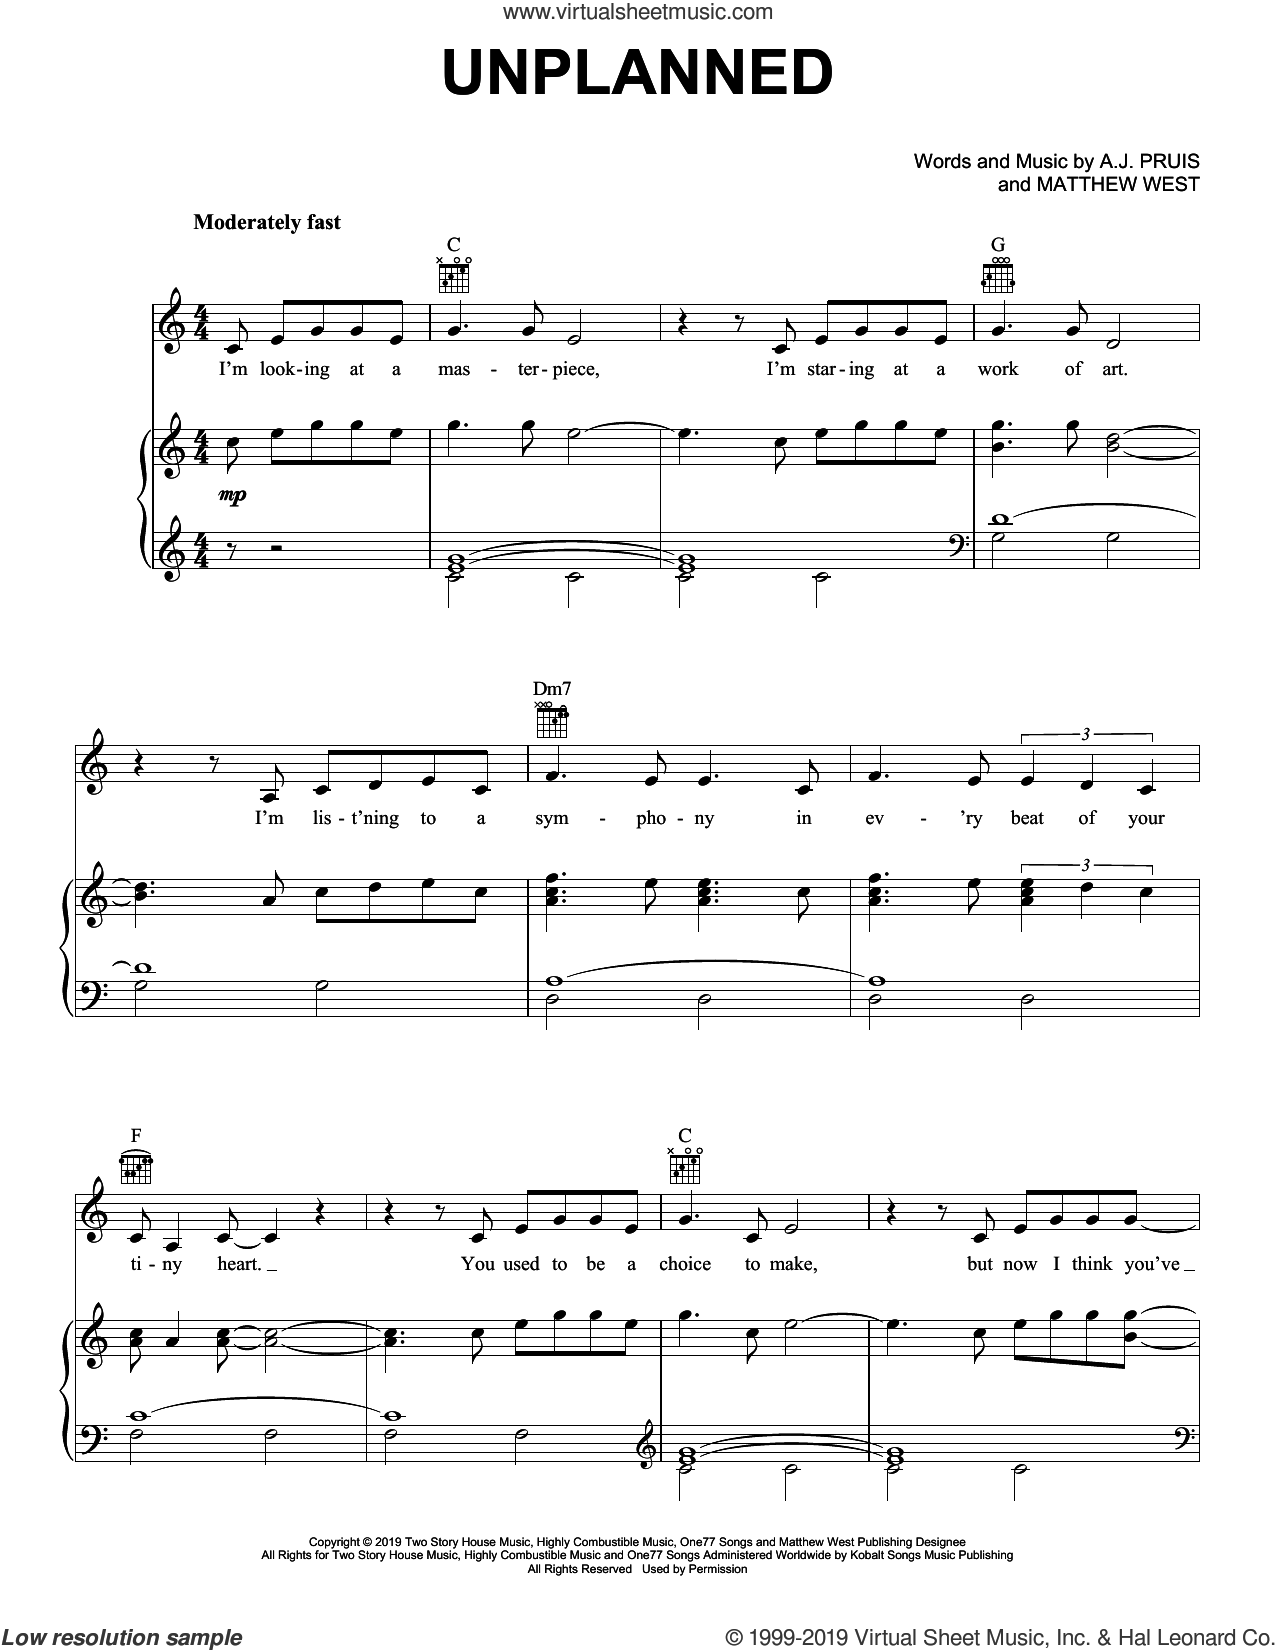 Unplanned sheet music for voice, piano or guitar by Matthew West and A.J. Pruis, intermediate skill level